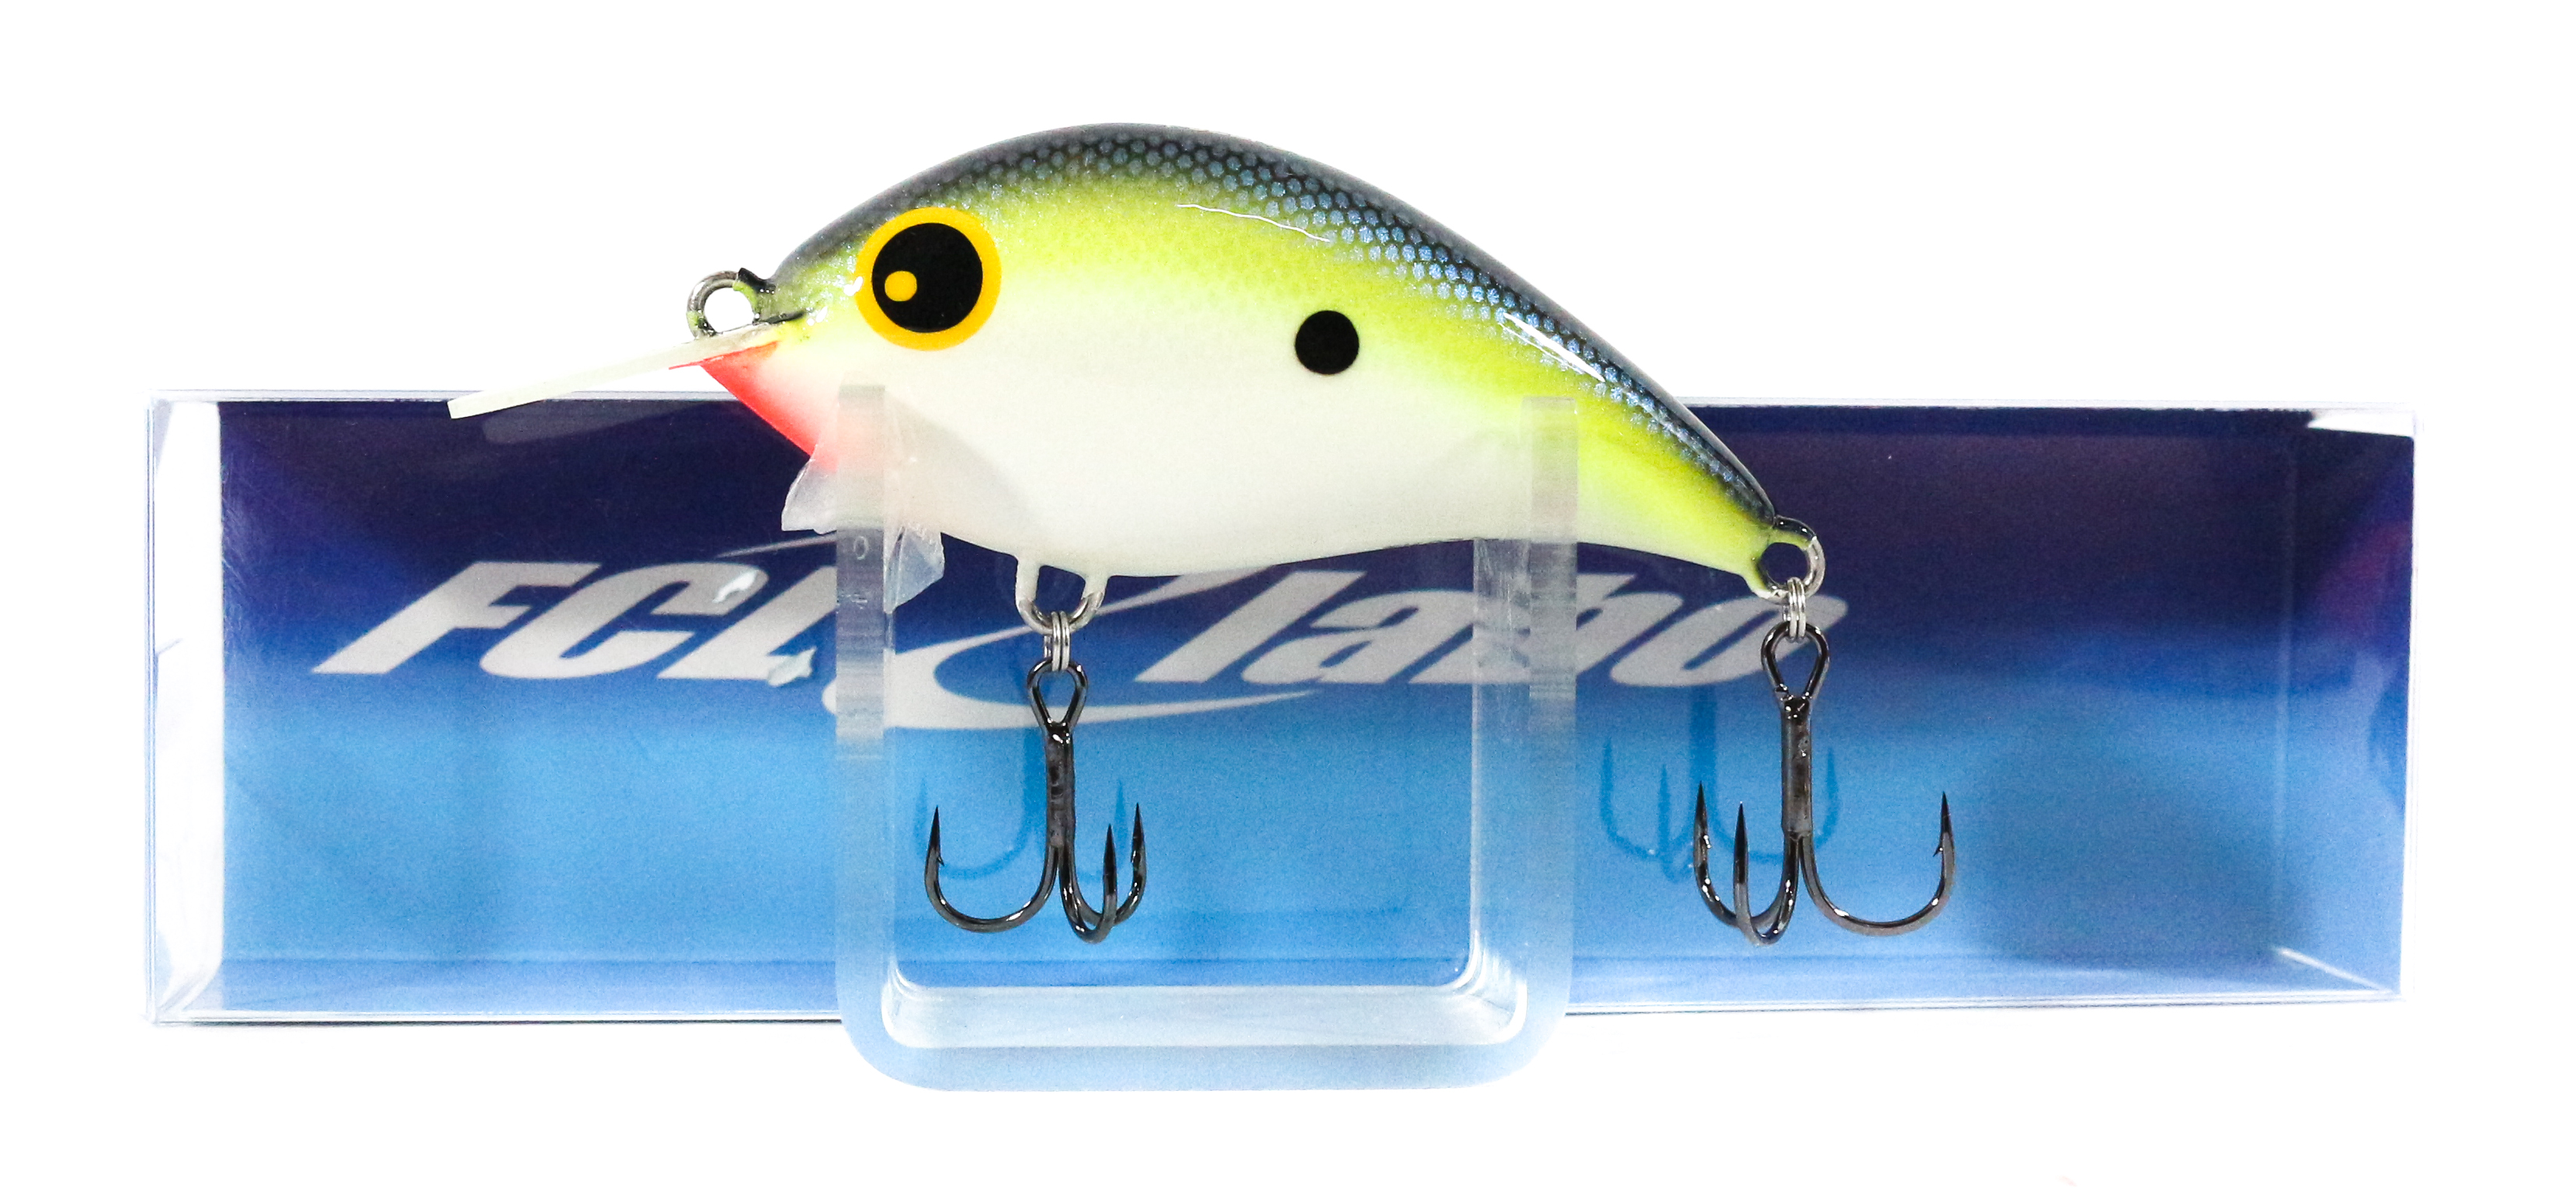 FCL Labo Lure TKC 70 Floating Lure NS (3979)